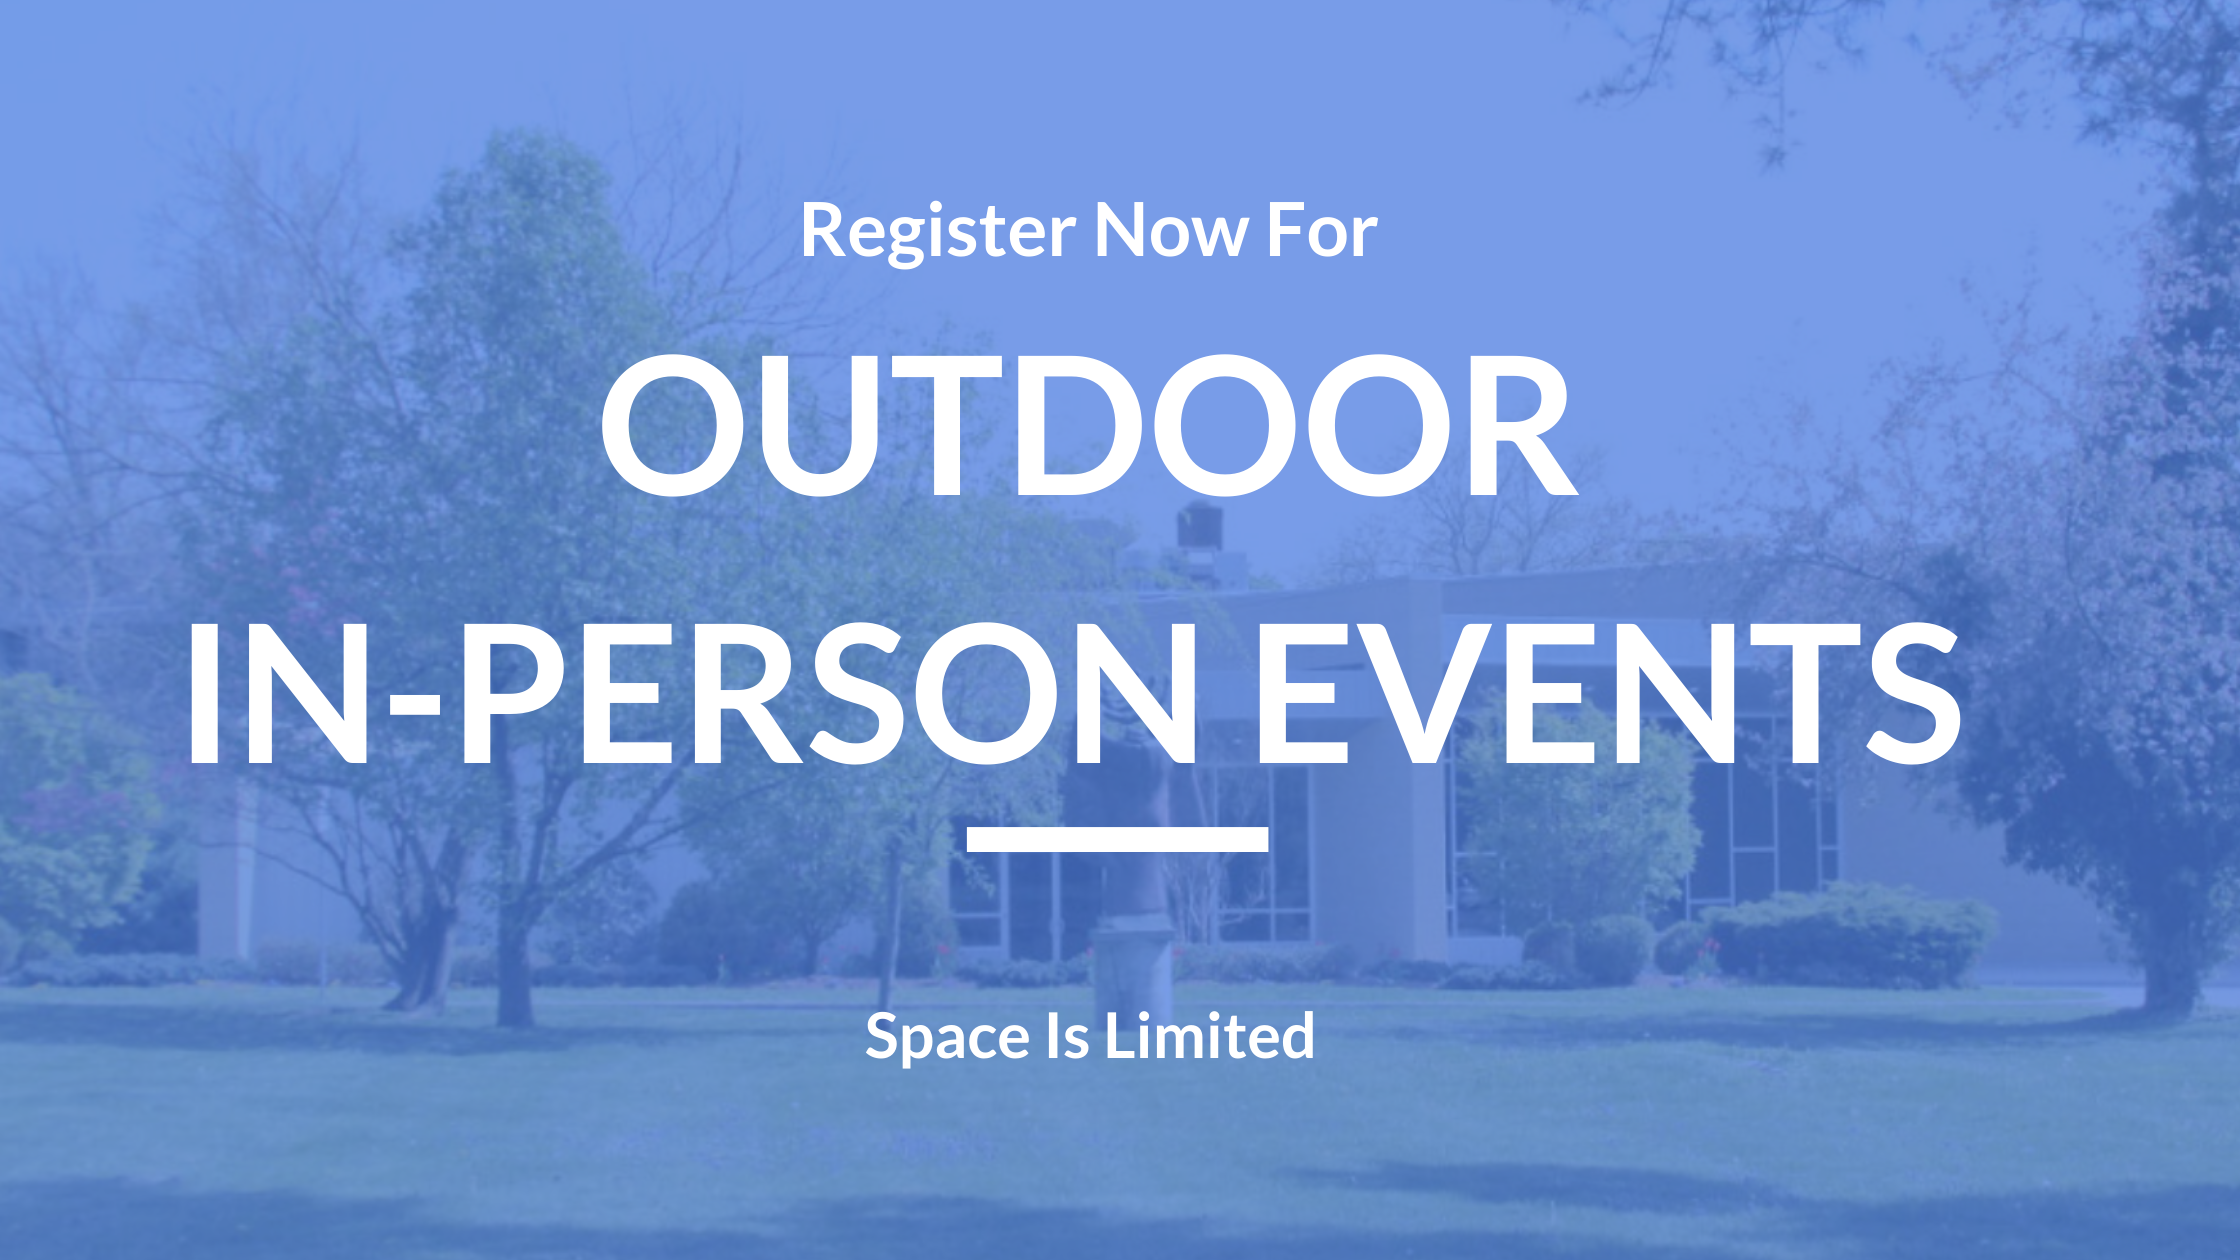 Register For Outdoor Events